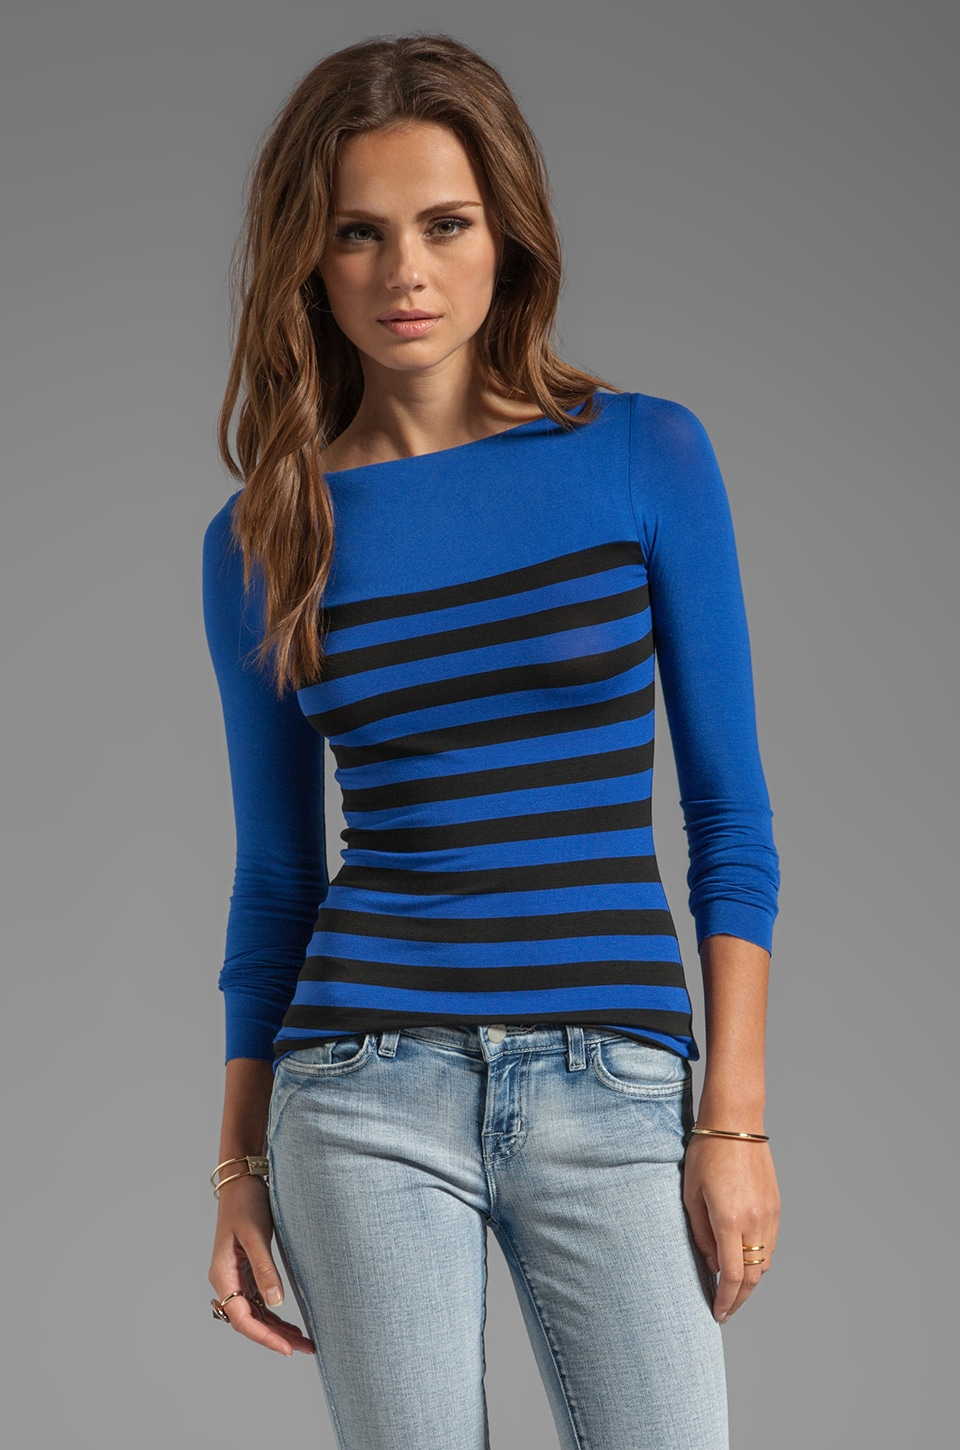 Bailey 44 Text Me Top in Black/Blue